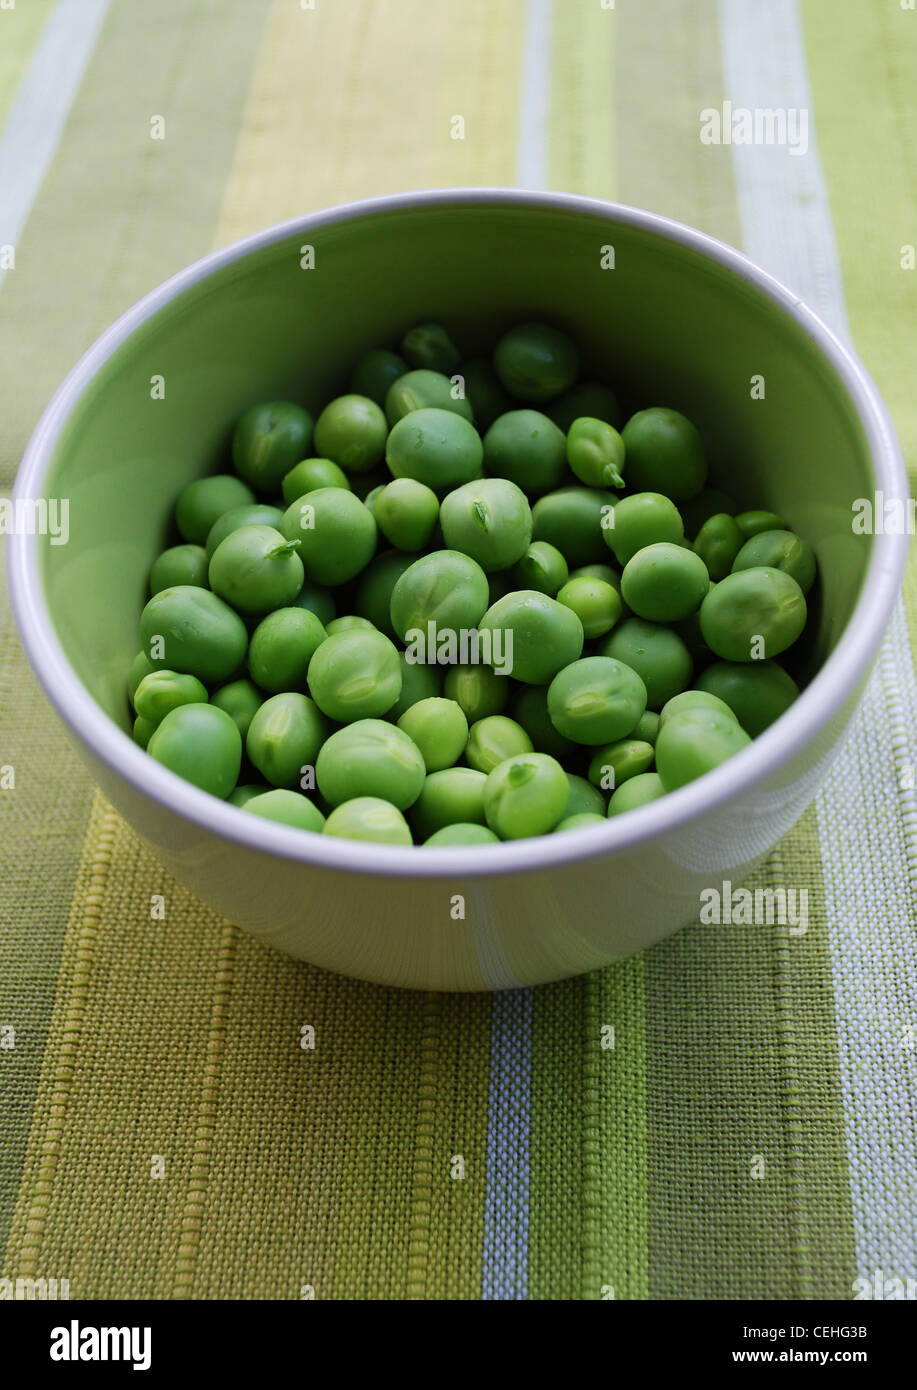 Shelled fresh ripe sweet green peas in a ceramic bowl Stock Photo